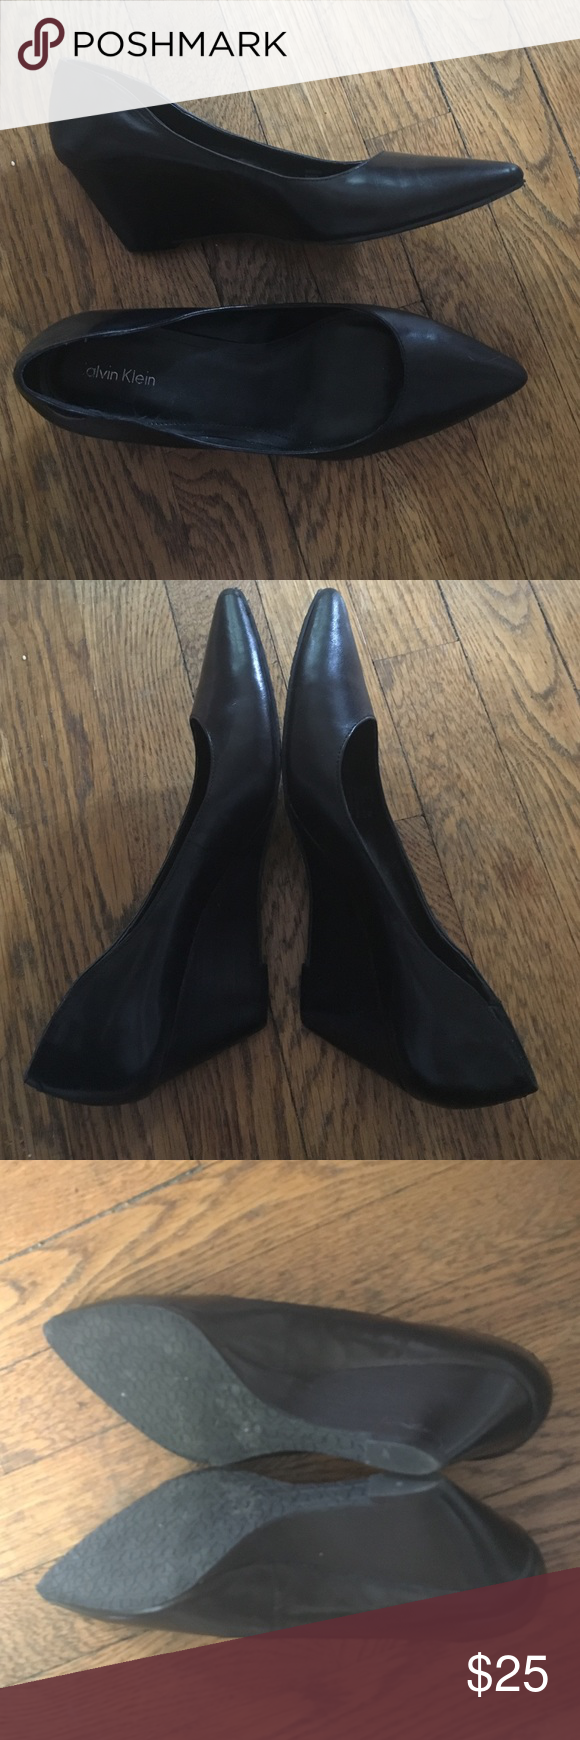 Calvin Klein Baret Wedge heel slip on us 8 Worn to one interview (I got the job, so the shoes must be lucky). Very good condition. Leather upper. Calvin Klein Shoes Wedges